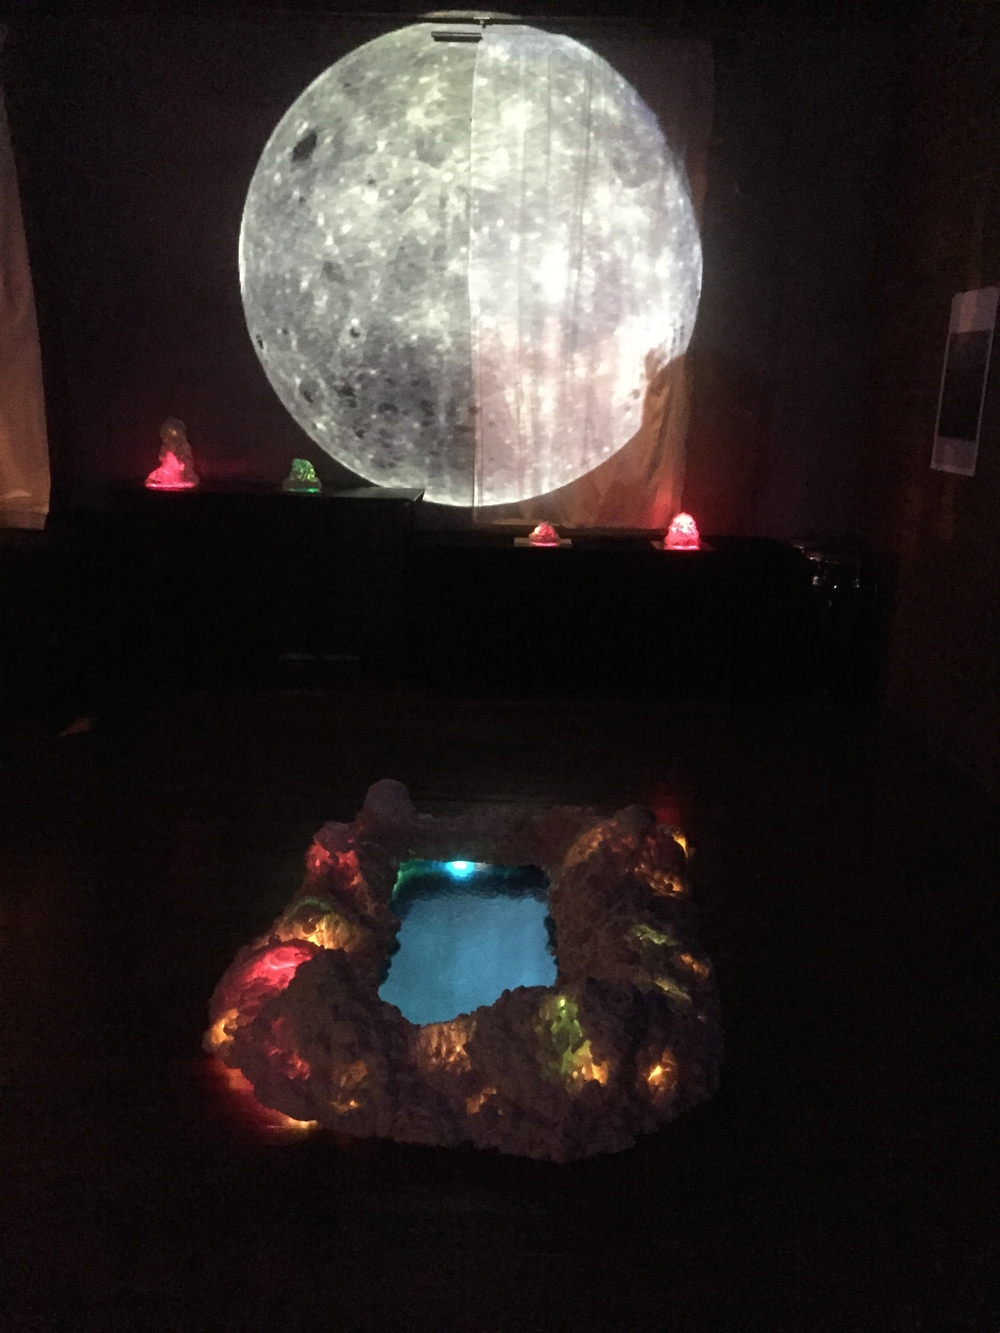 Floor sculpture and projected rotating moon on wall.